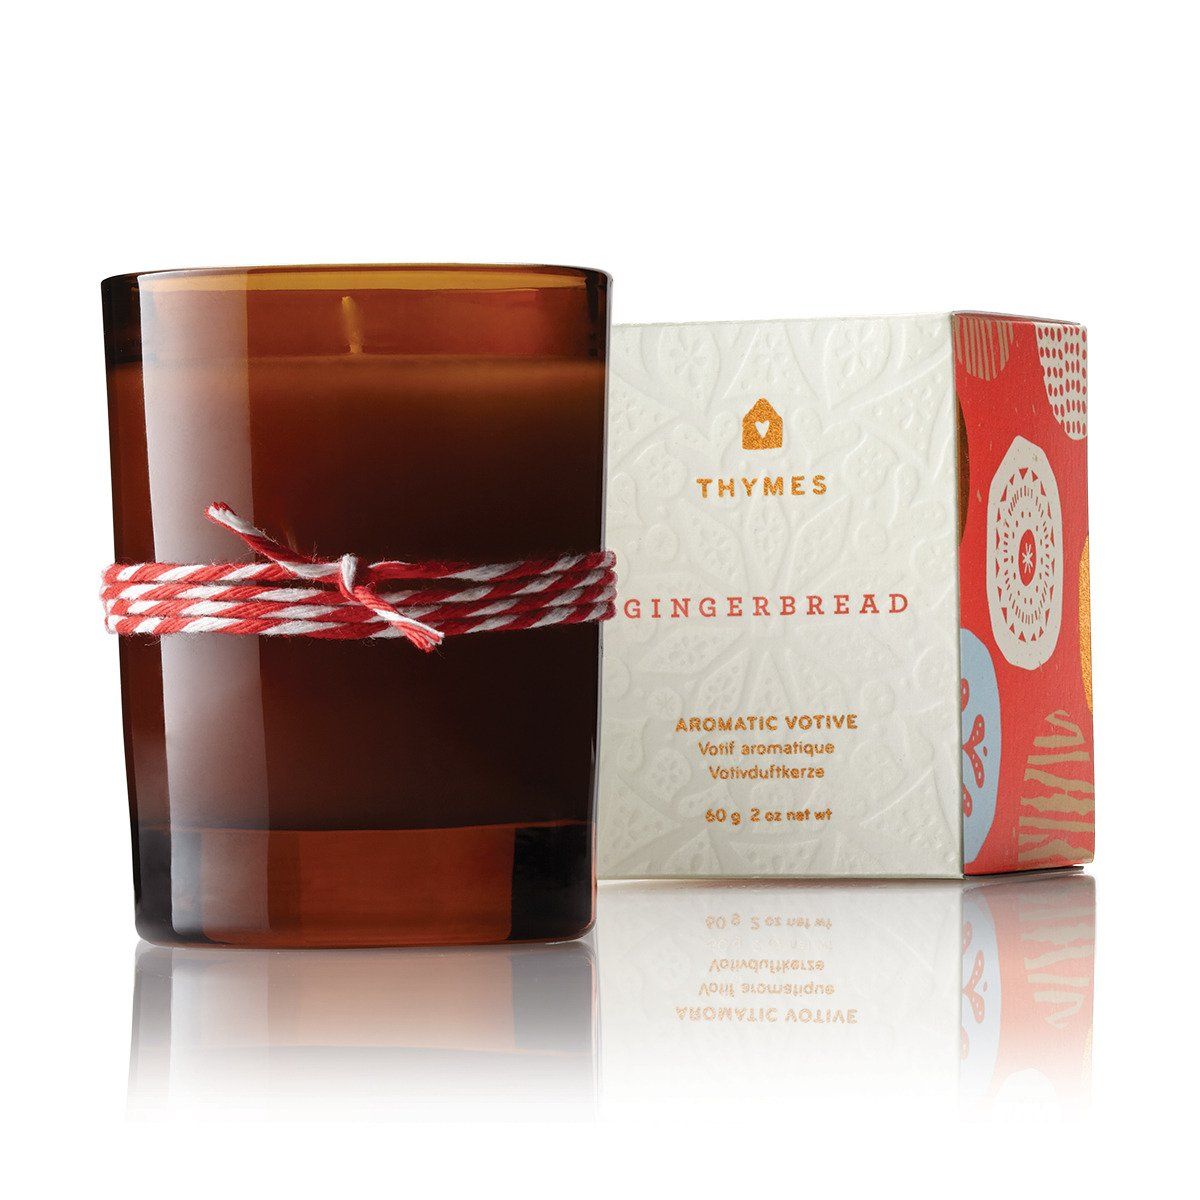 Thymes – Fragrant Gingerbread Votive Candle with 15-Hour Burn Time – 2 Ounces